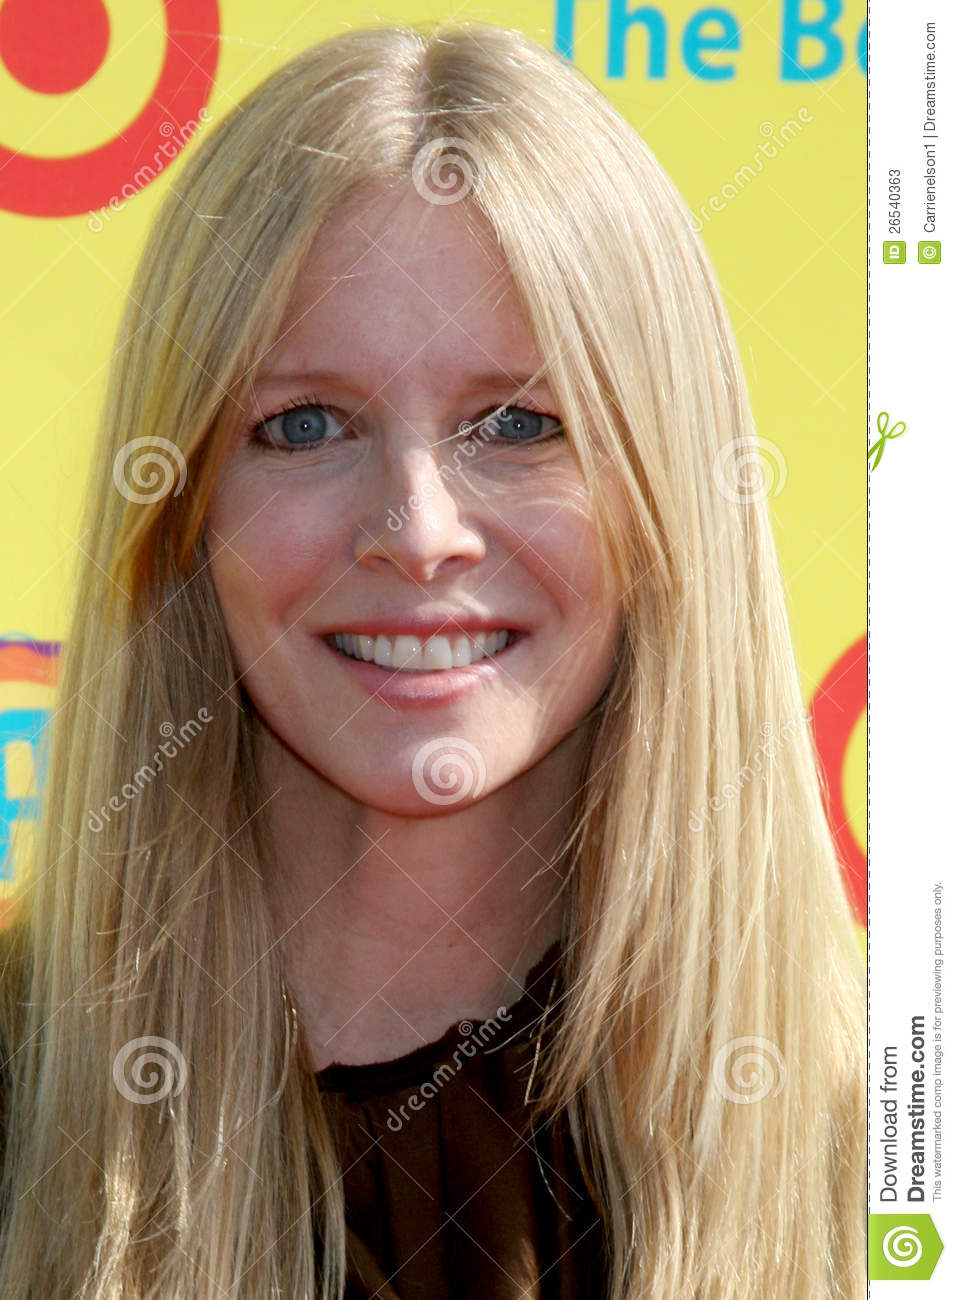 lauralee bell and husbandlauralee bell age, lauralee bell family, lauralee bell instagram, lauralee bell net worth, lauralee bell and husband, lauralee bell twitter, lauralee bell parents, lauralee bell bio, lauralee bell 2016, lauralee bell young and the restless, lauralee bell biography, lauralee bell martin, lauralee bell scott martin, lauralee bell and scott martin photos, lauralee bell house, lauralee bell sister, lauralee bell and kristen bell related, lauralee bell actress, lauralee bell imdb, lauralee bell images